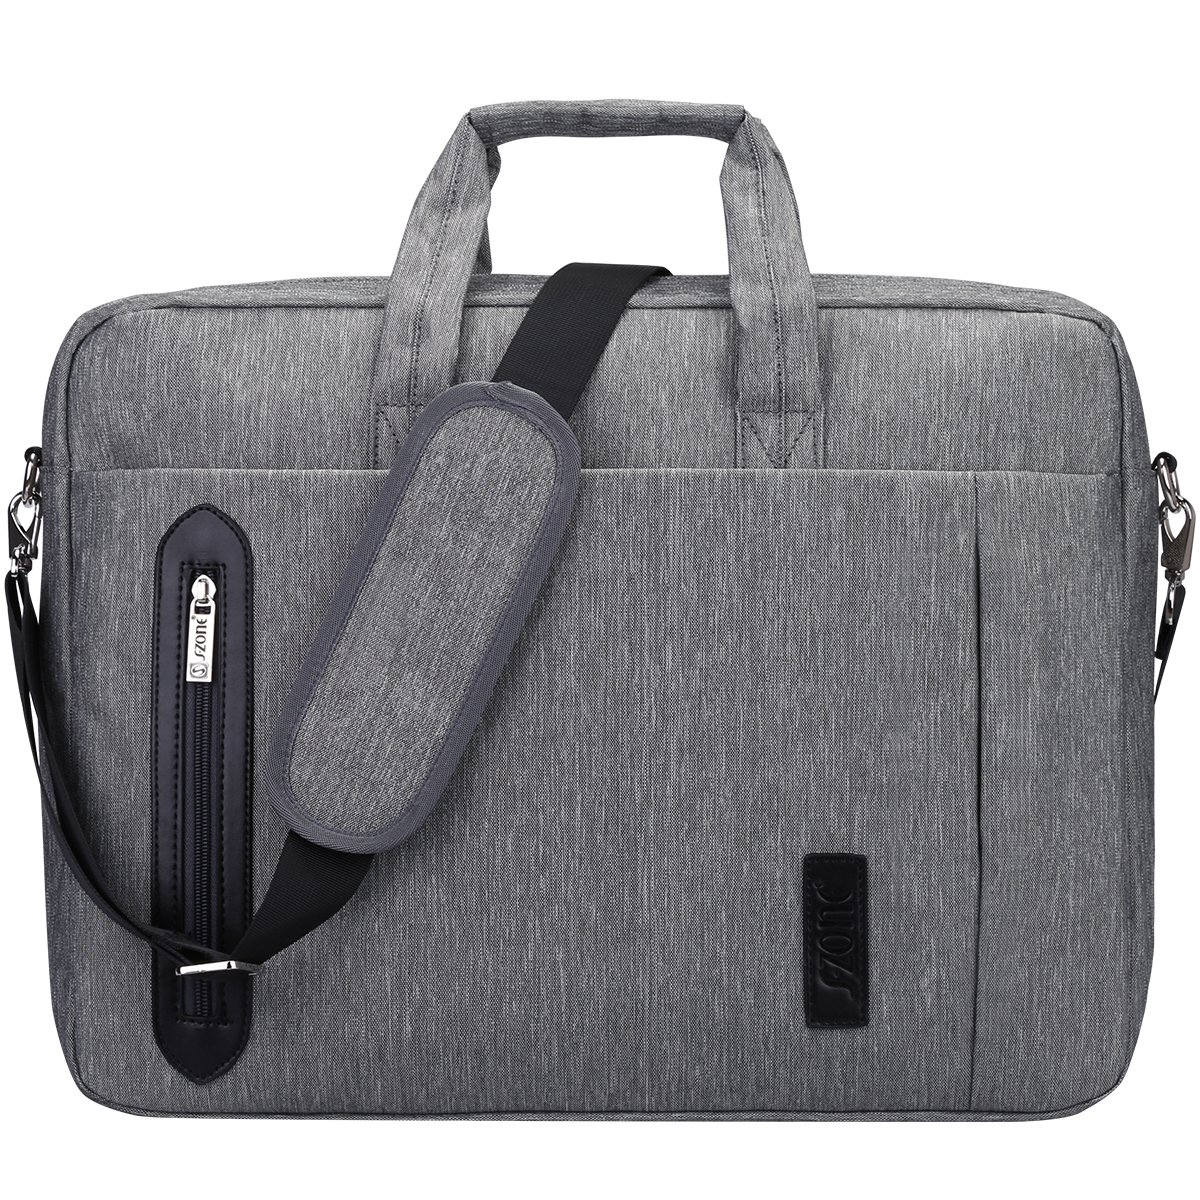 S ZONE Oversize Oxford Nylon 17.3 inch Laptop Case Messenger Shoulder Laptop Bag Briefcase